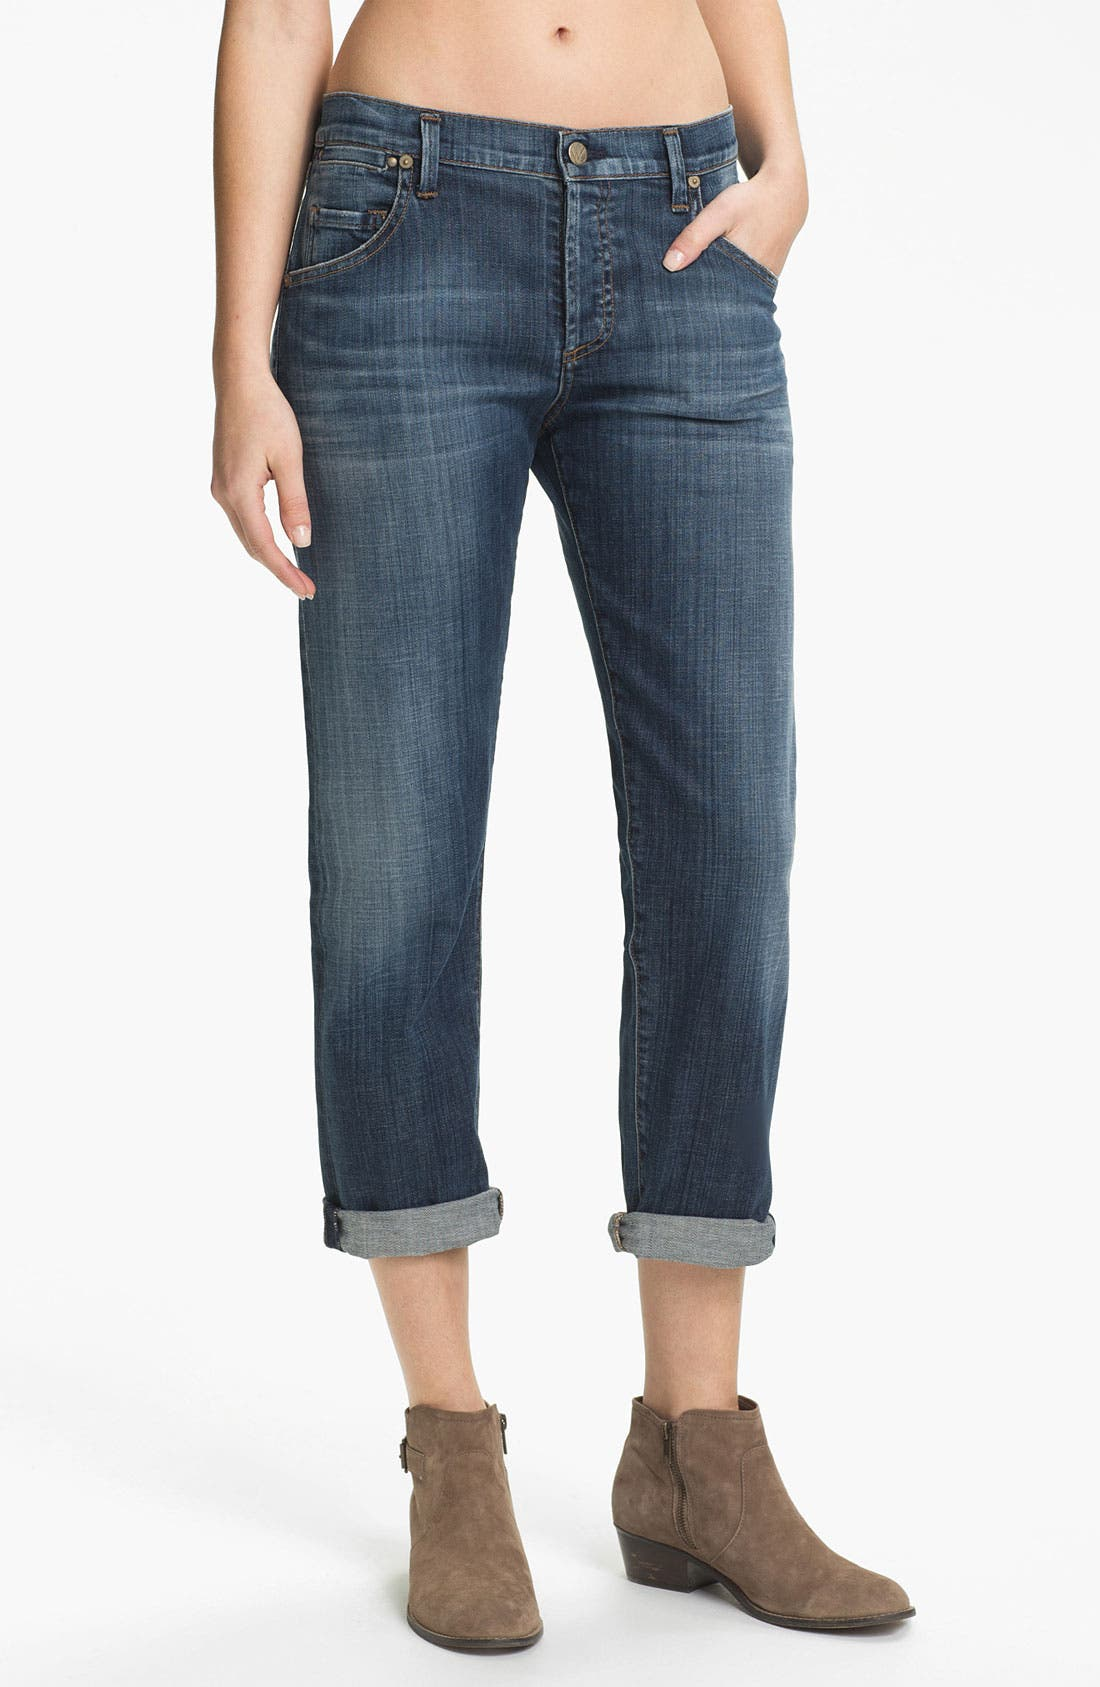 Alternate Image 1 Selected - Citizens of Humanity 'Dylan' Cropped Loose Fit Jeans (Scene)